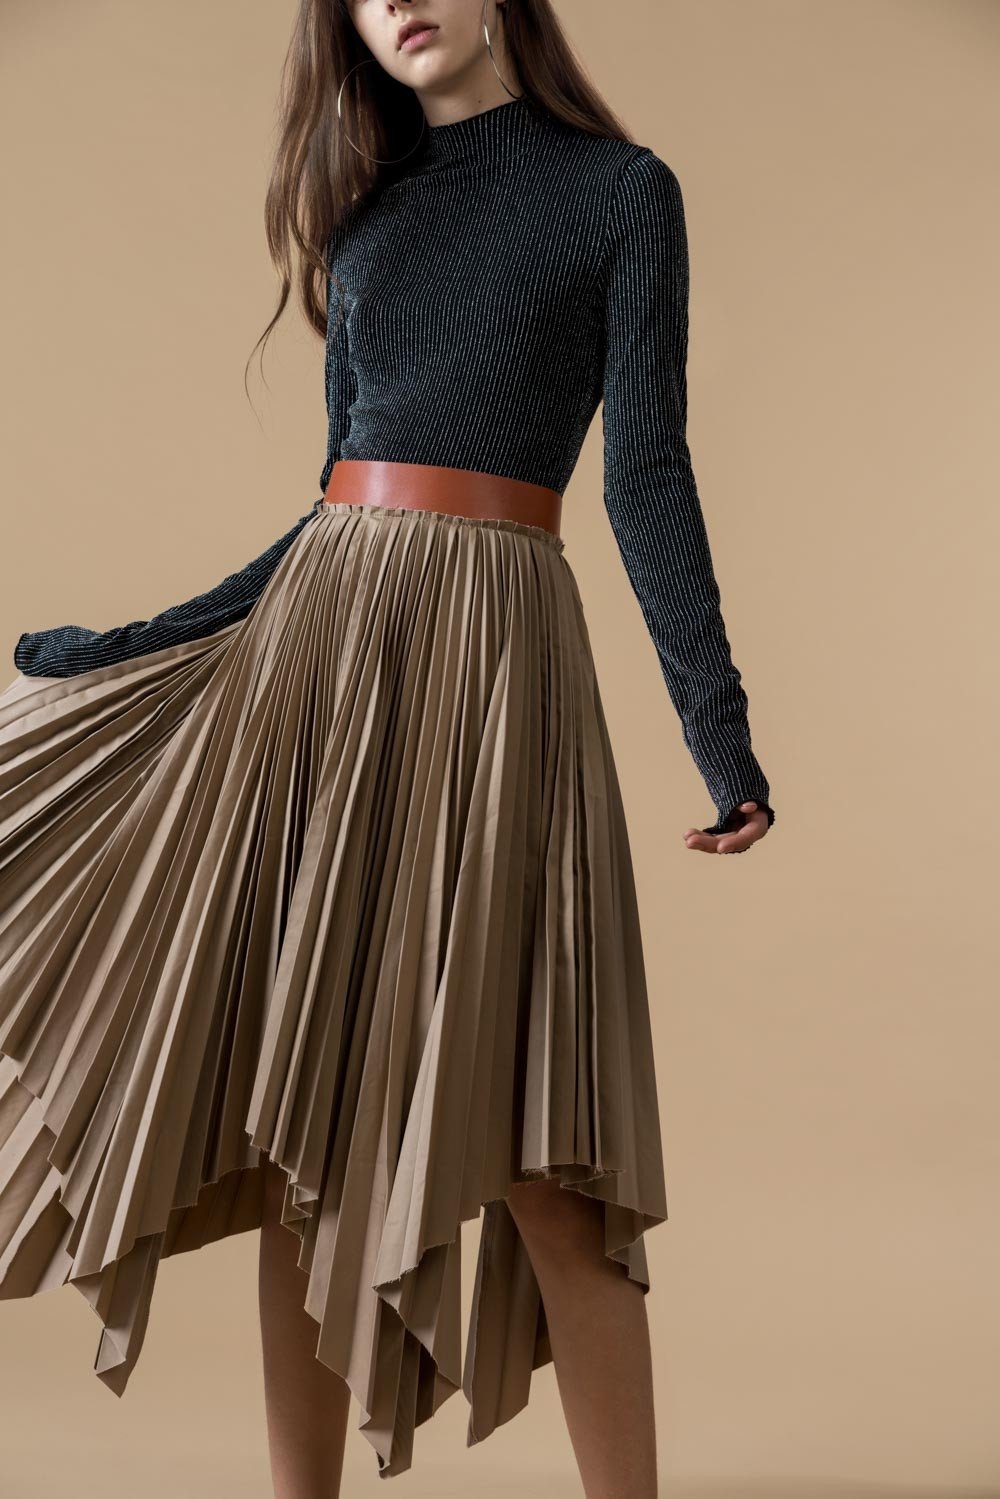 belted pleated skirt oeuzfwn